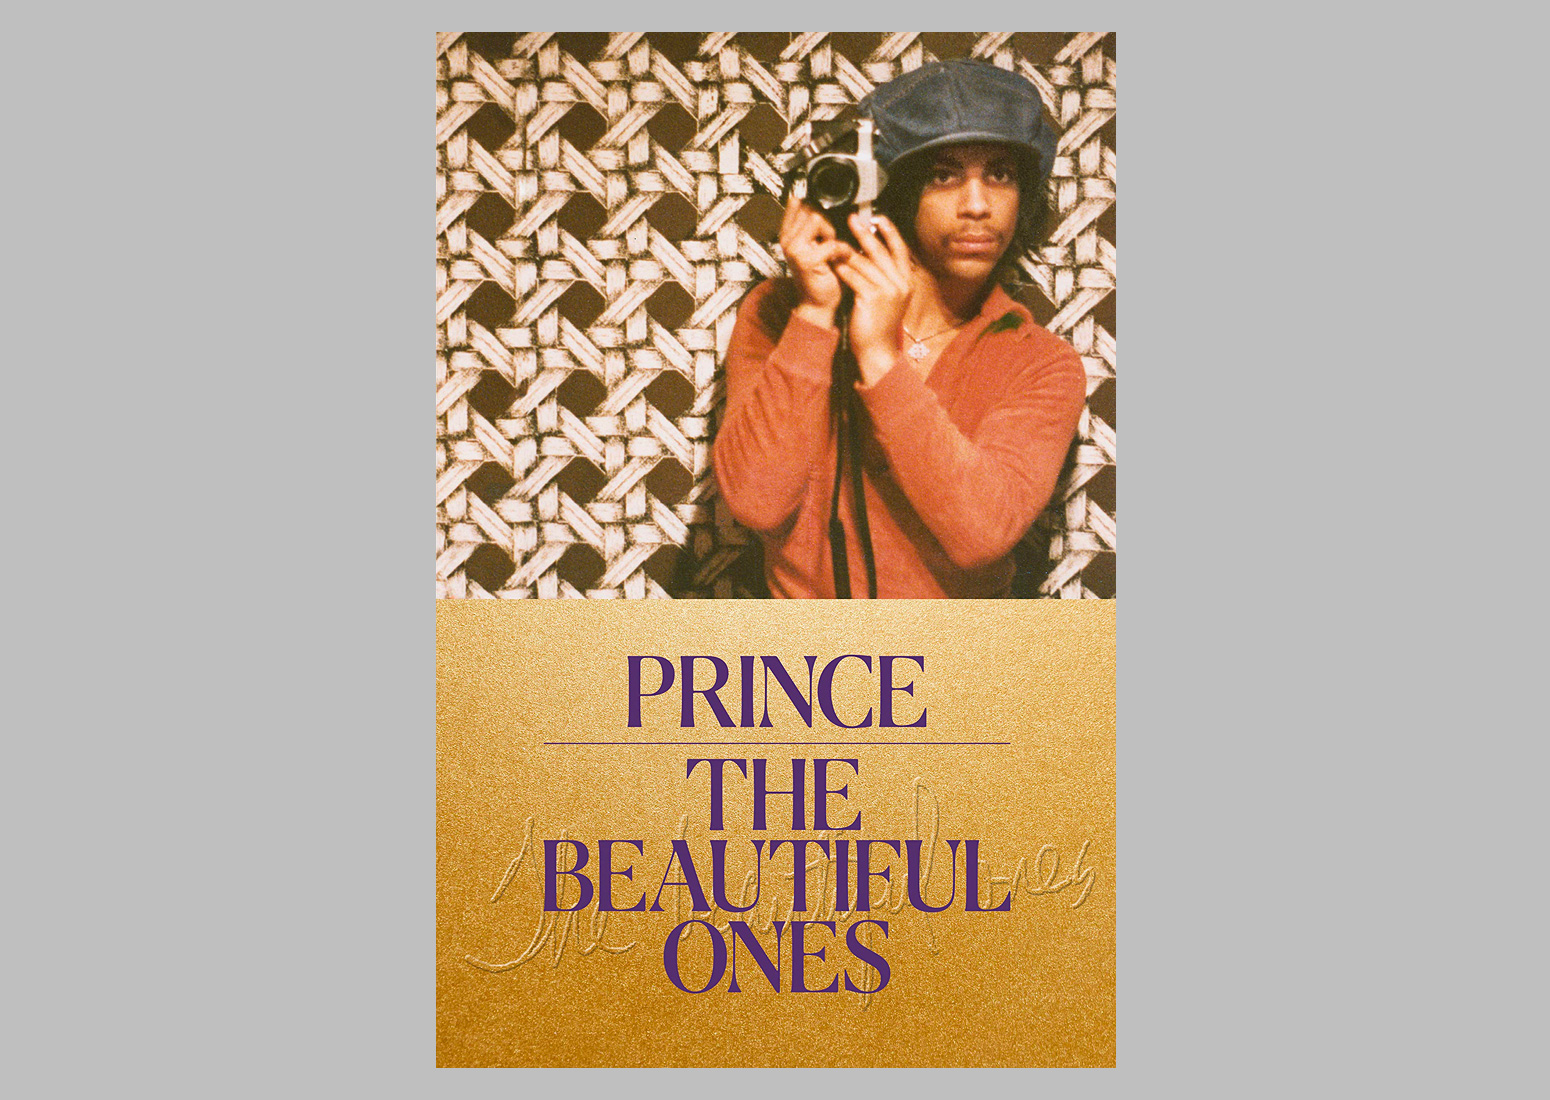 Prince: The Beautiful Ones at werd.com